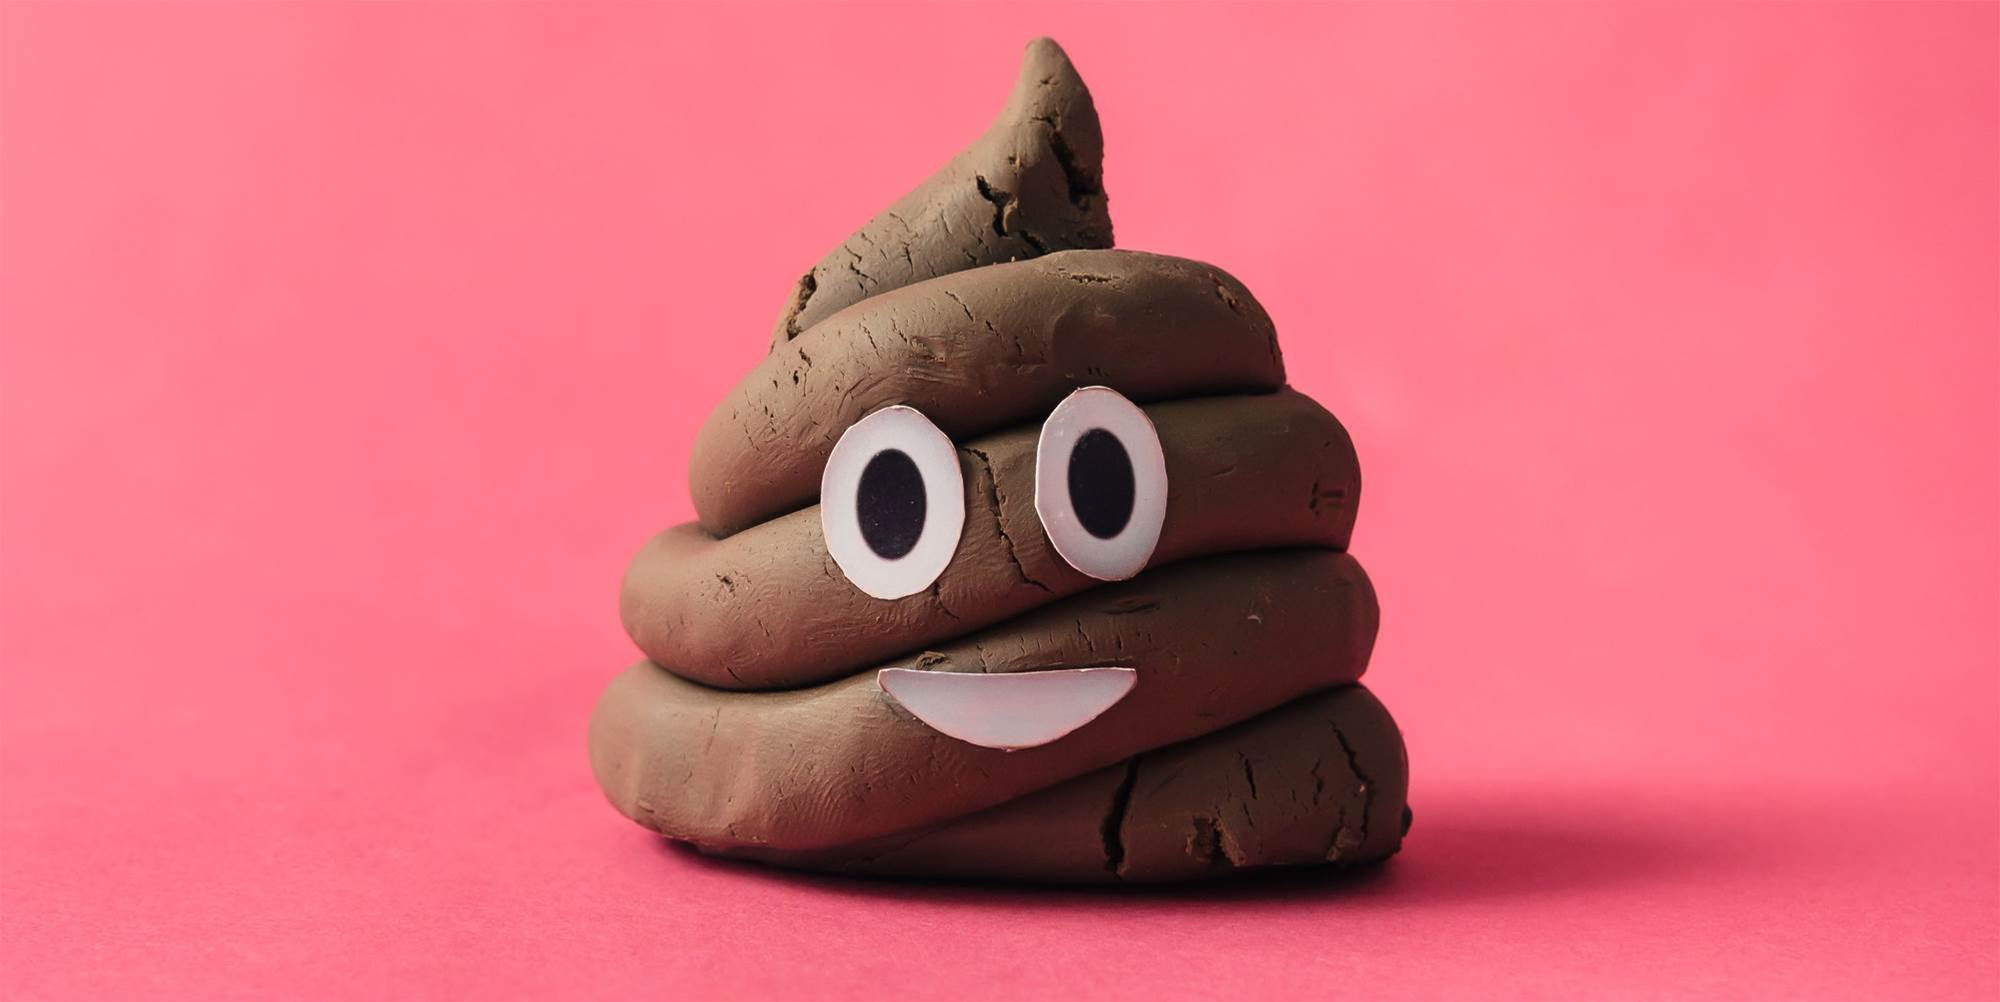 There Is Probably Plastic in Your Poop